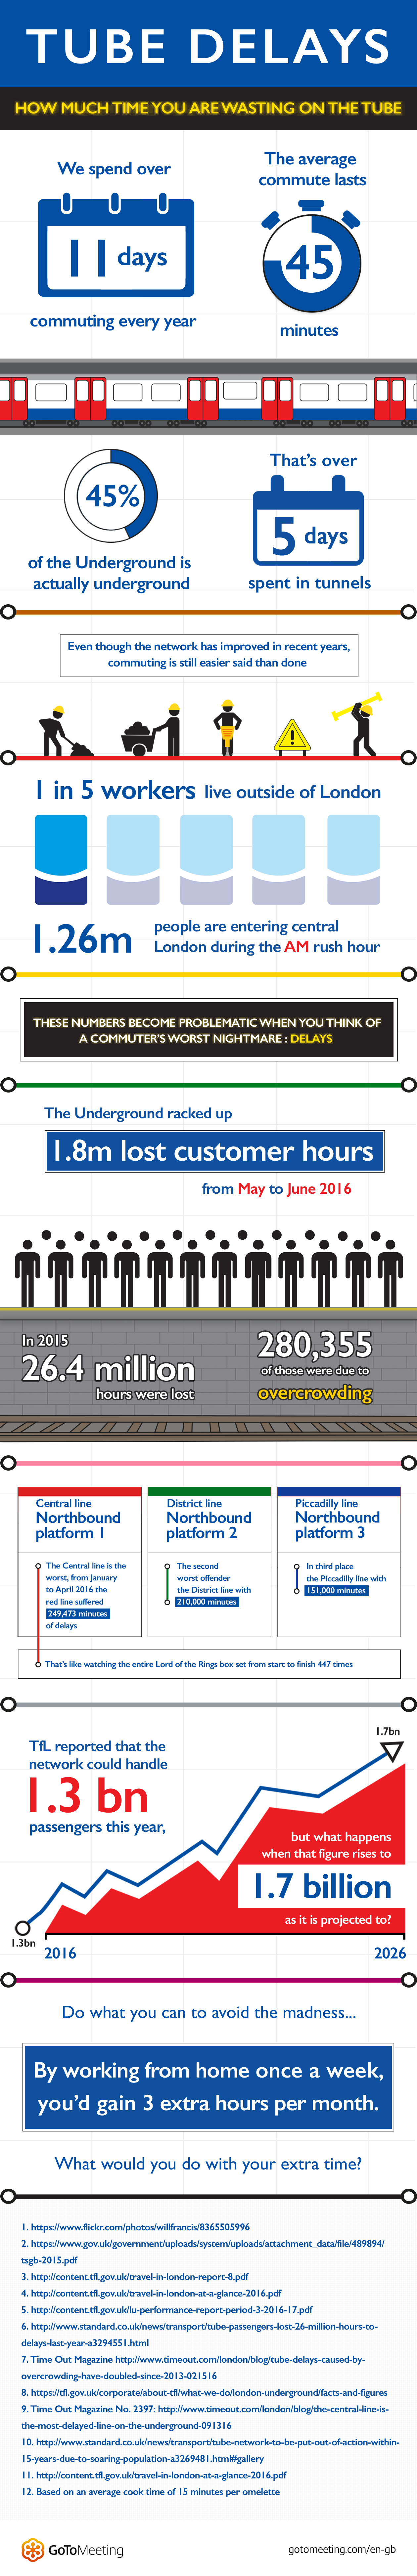 Citrix tube delays - Infographic